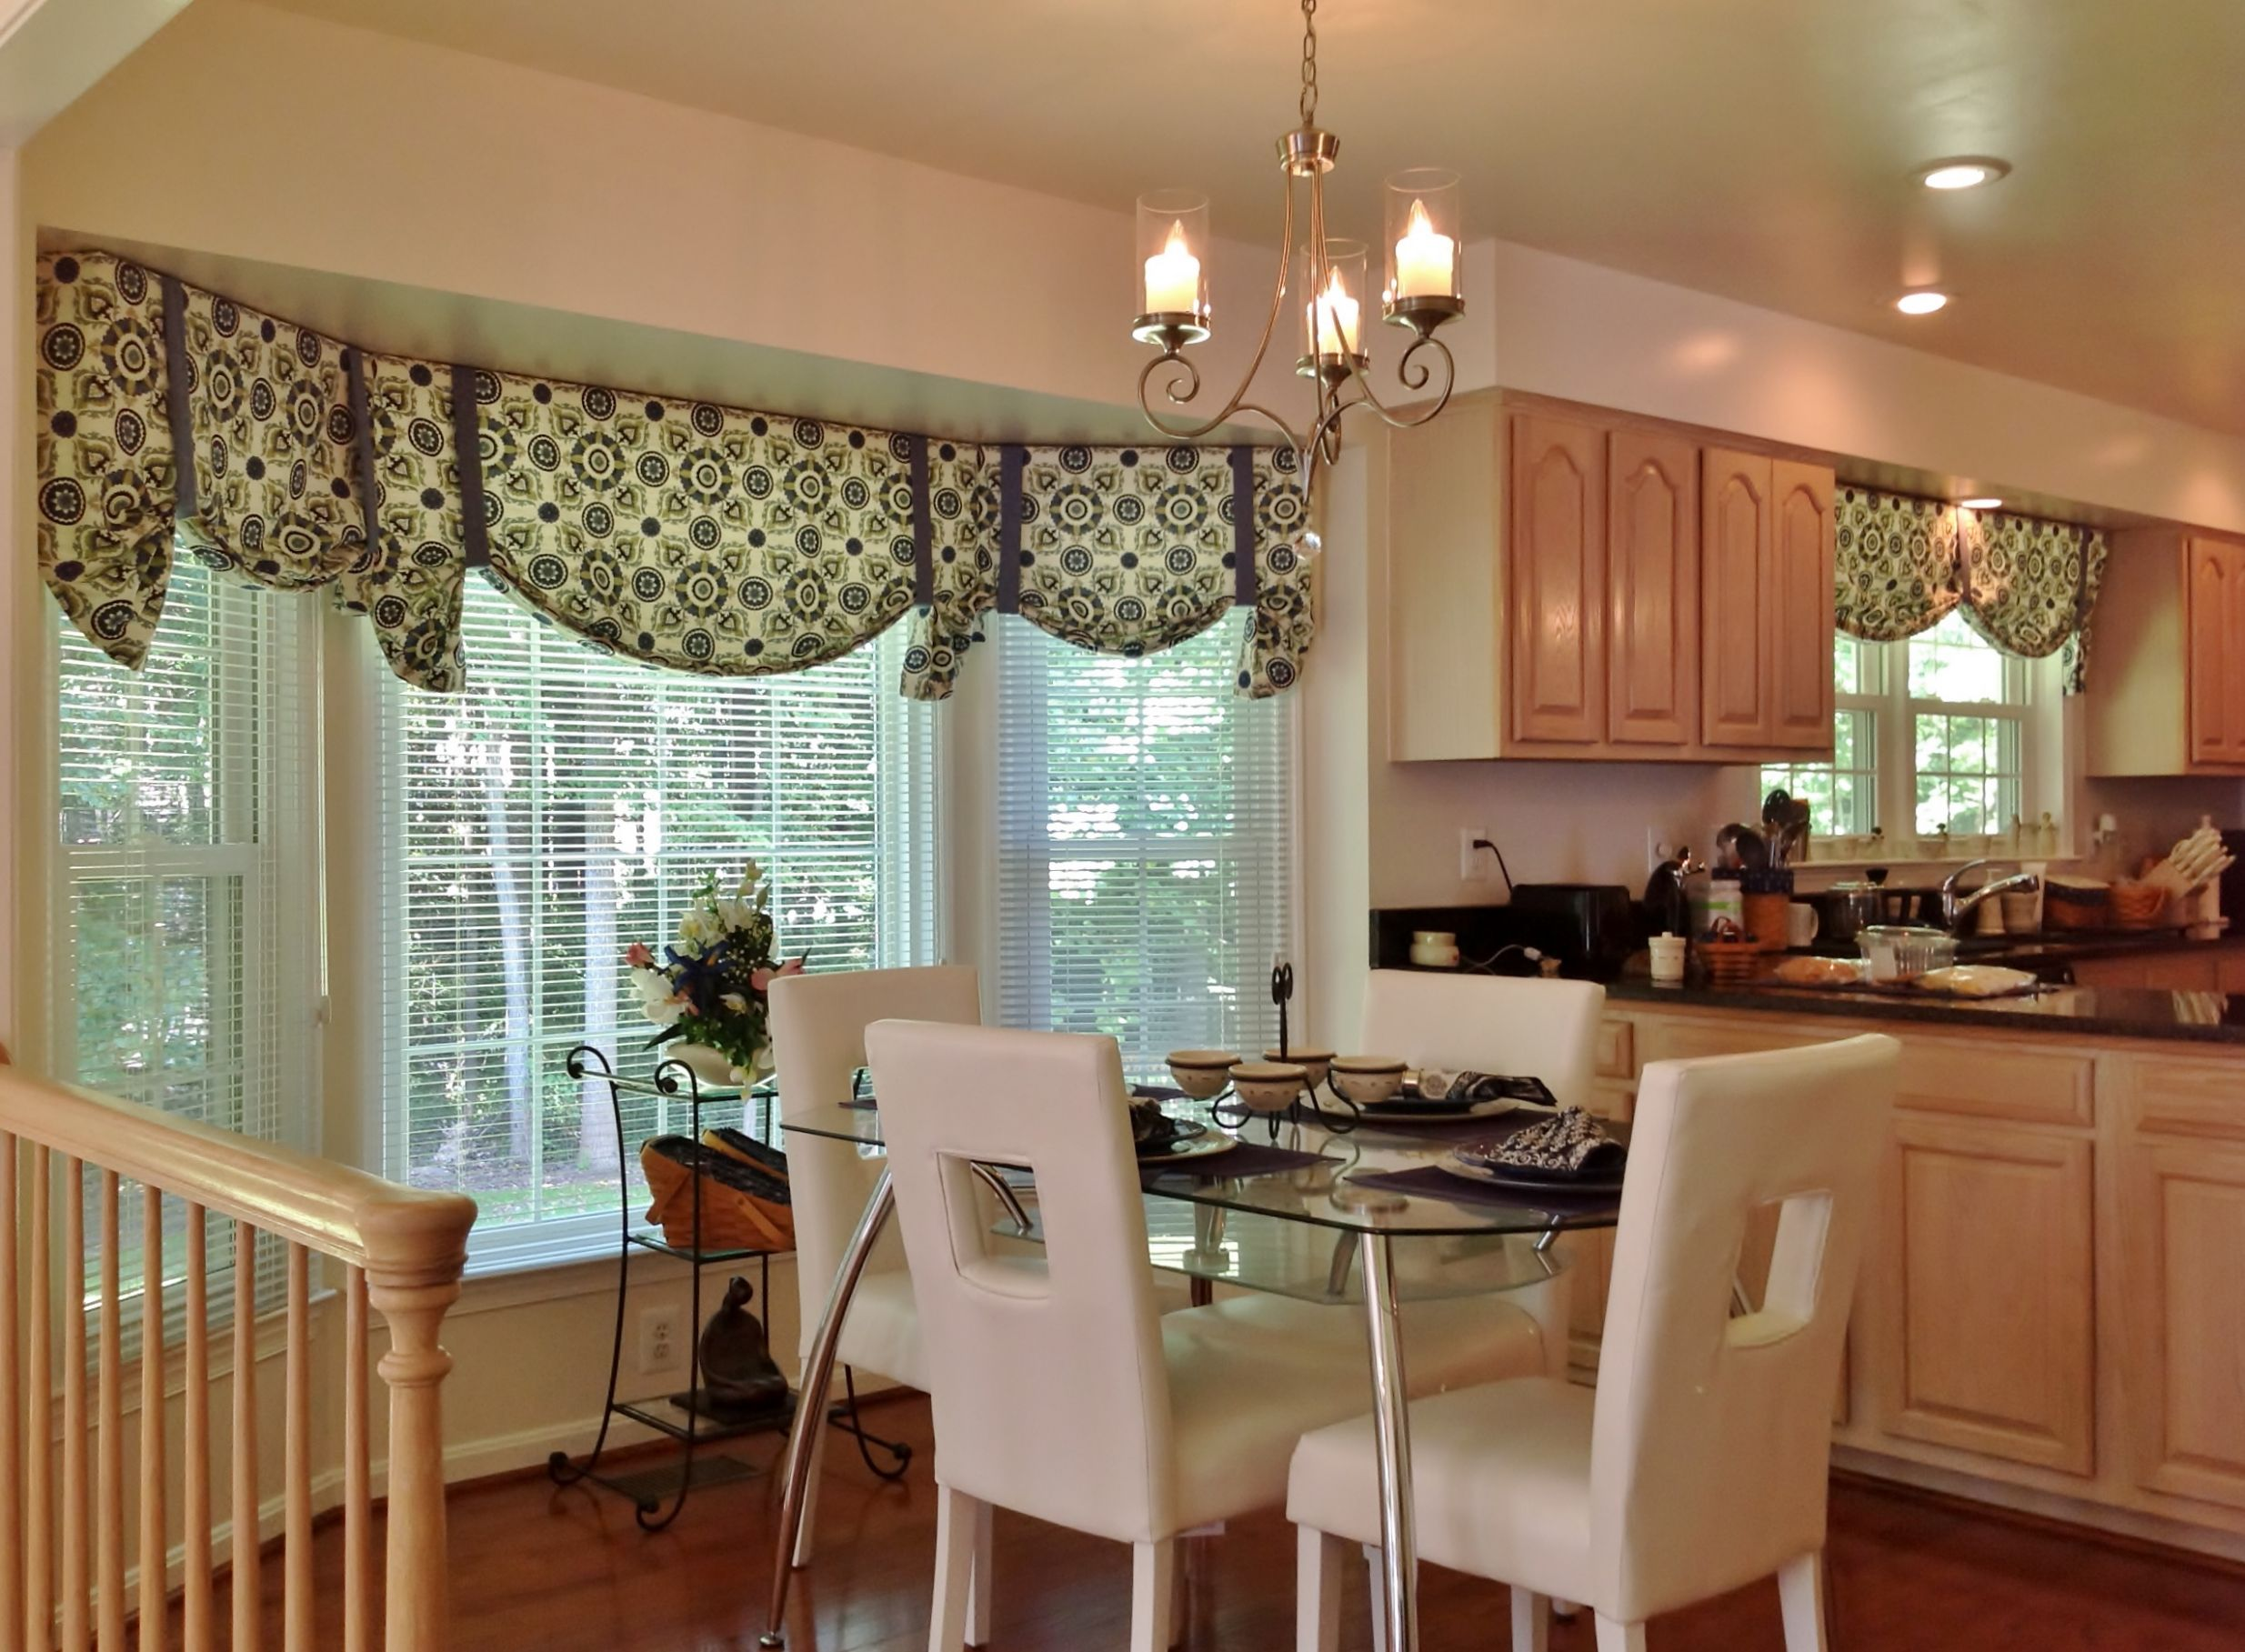 BUAT TESTING DOANG: Furnishings For A Sunroom - sunroom valance ideas